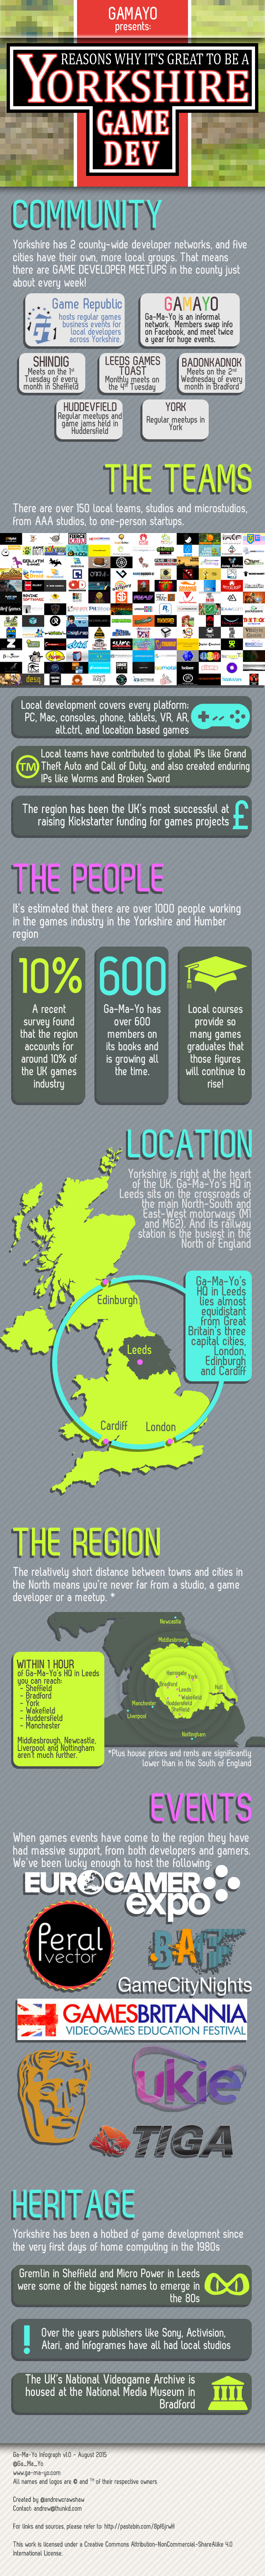 Yorkshire Game Dev Infographic